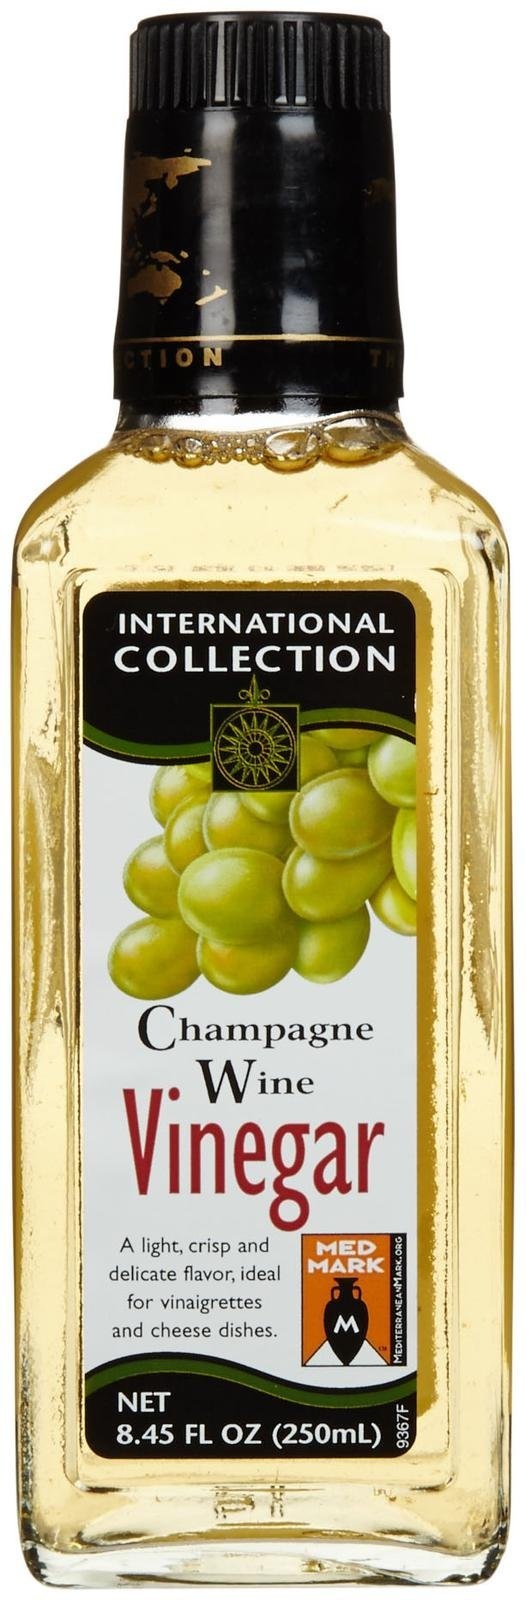 International Collection Vinegar Champagne Wine - 8.45 Ounces